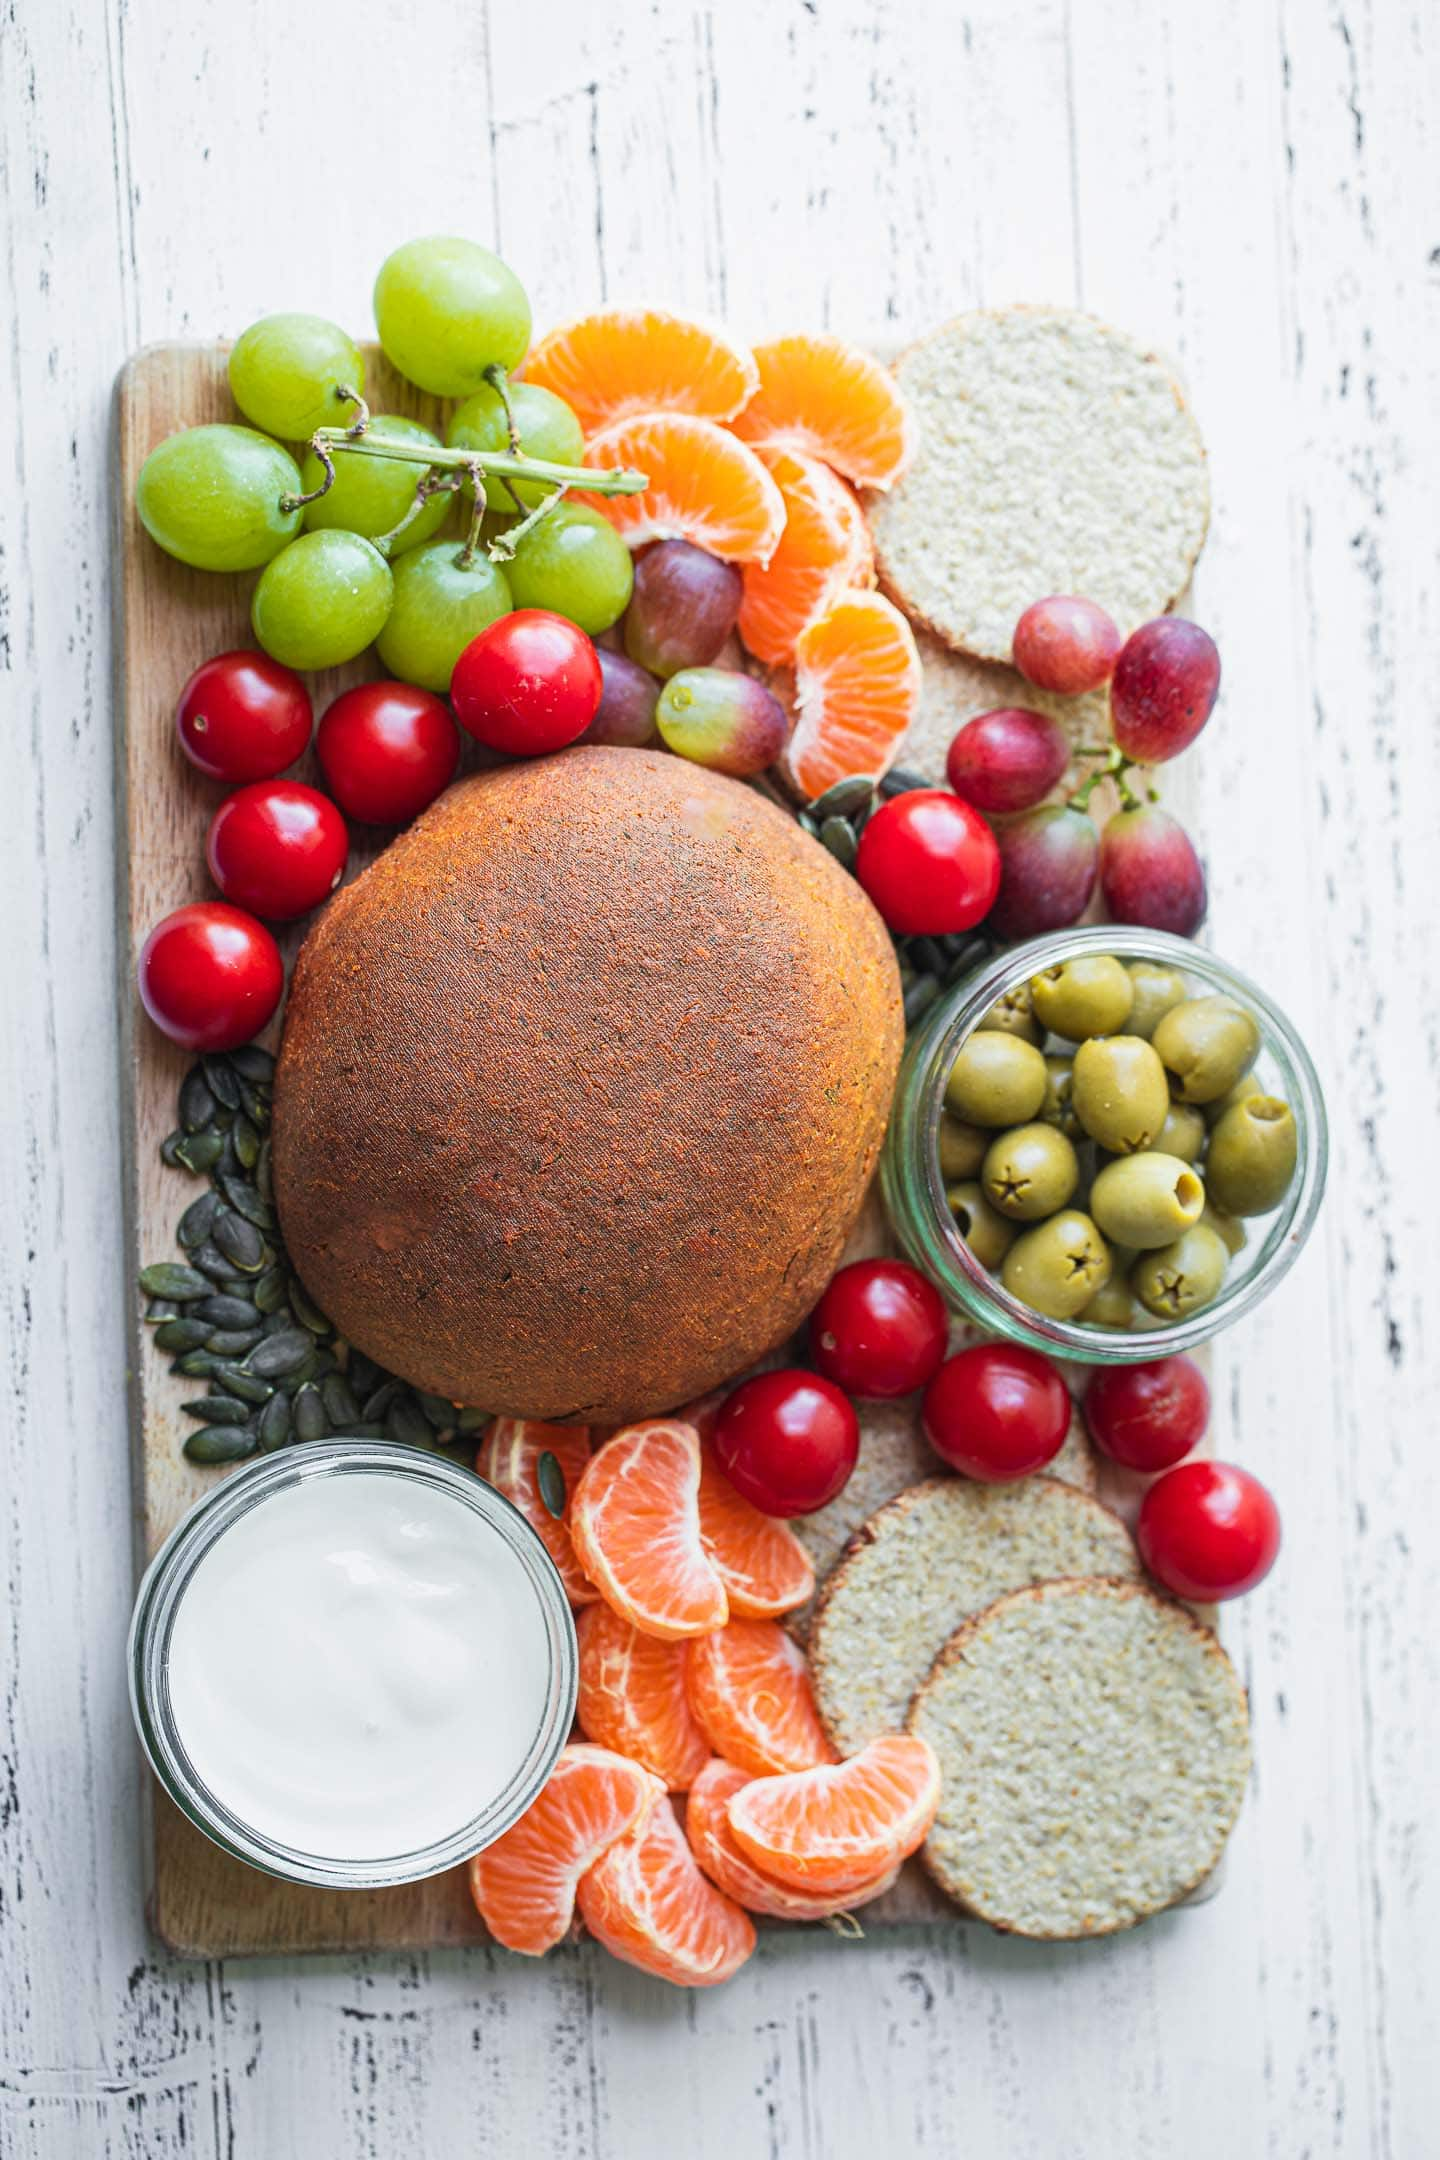 Platter with vegan cheese grapes tomatoes and crackers